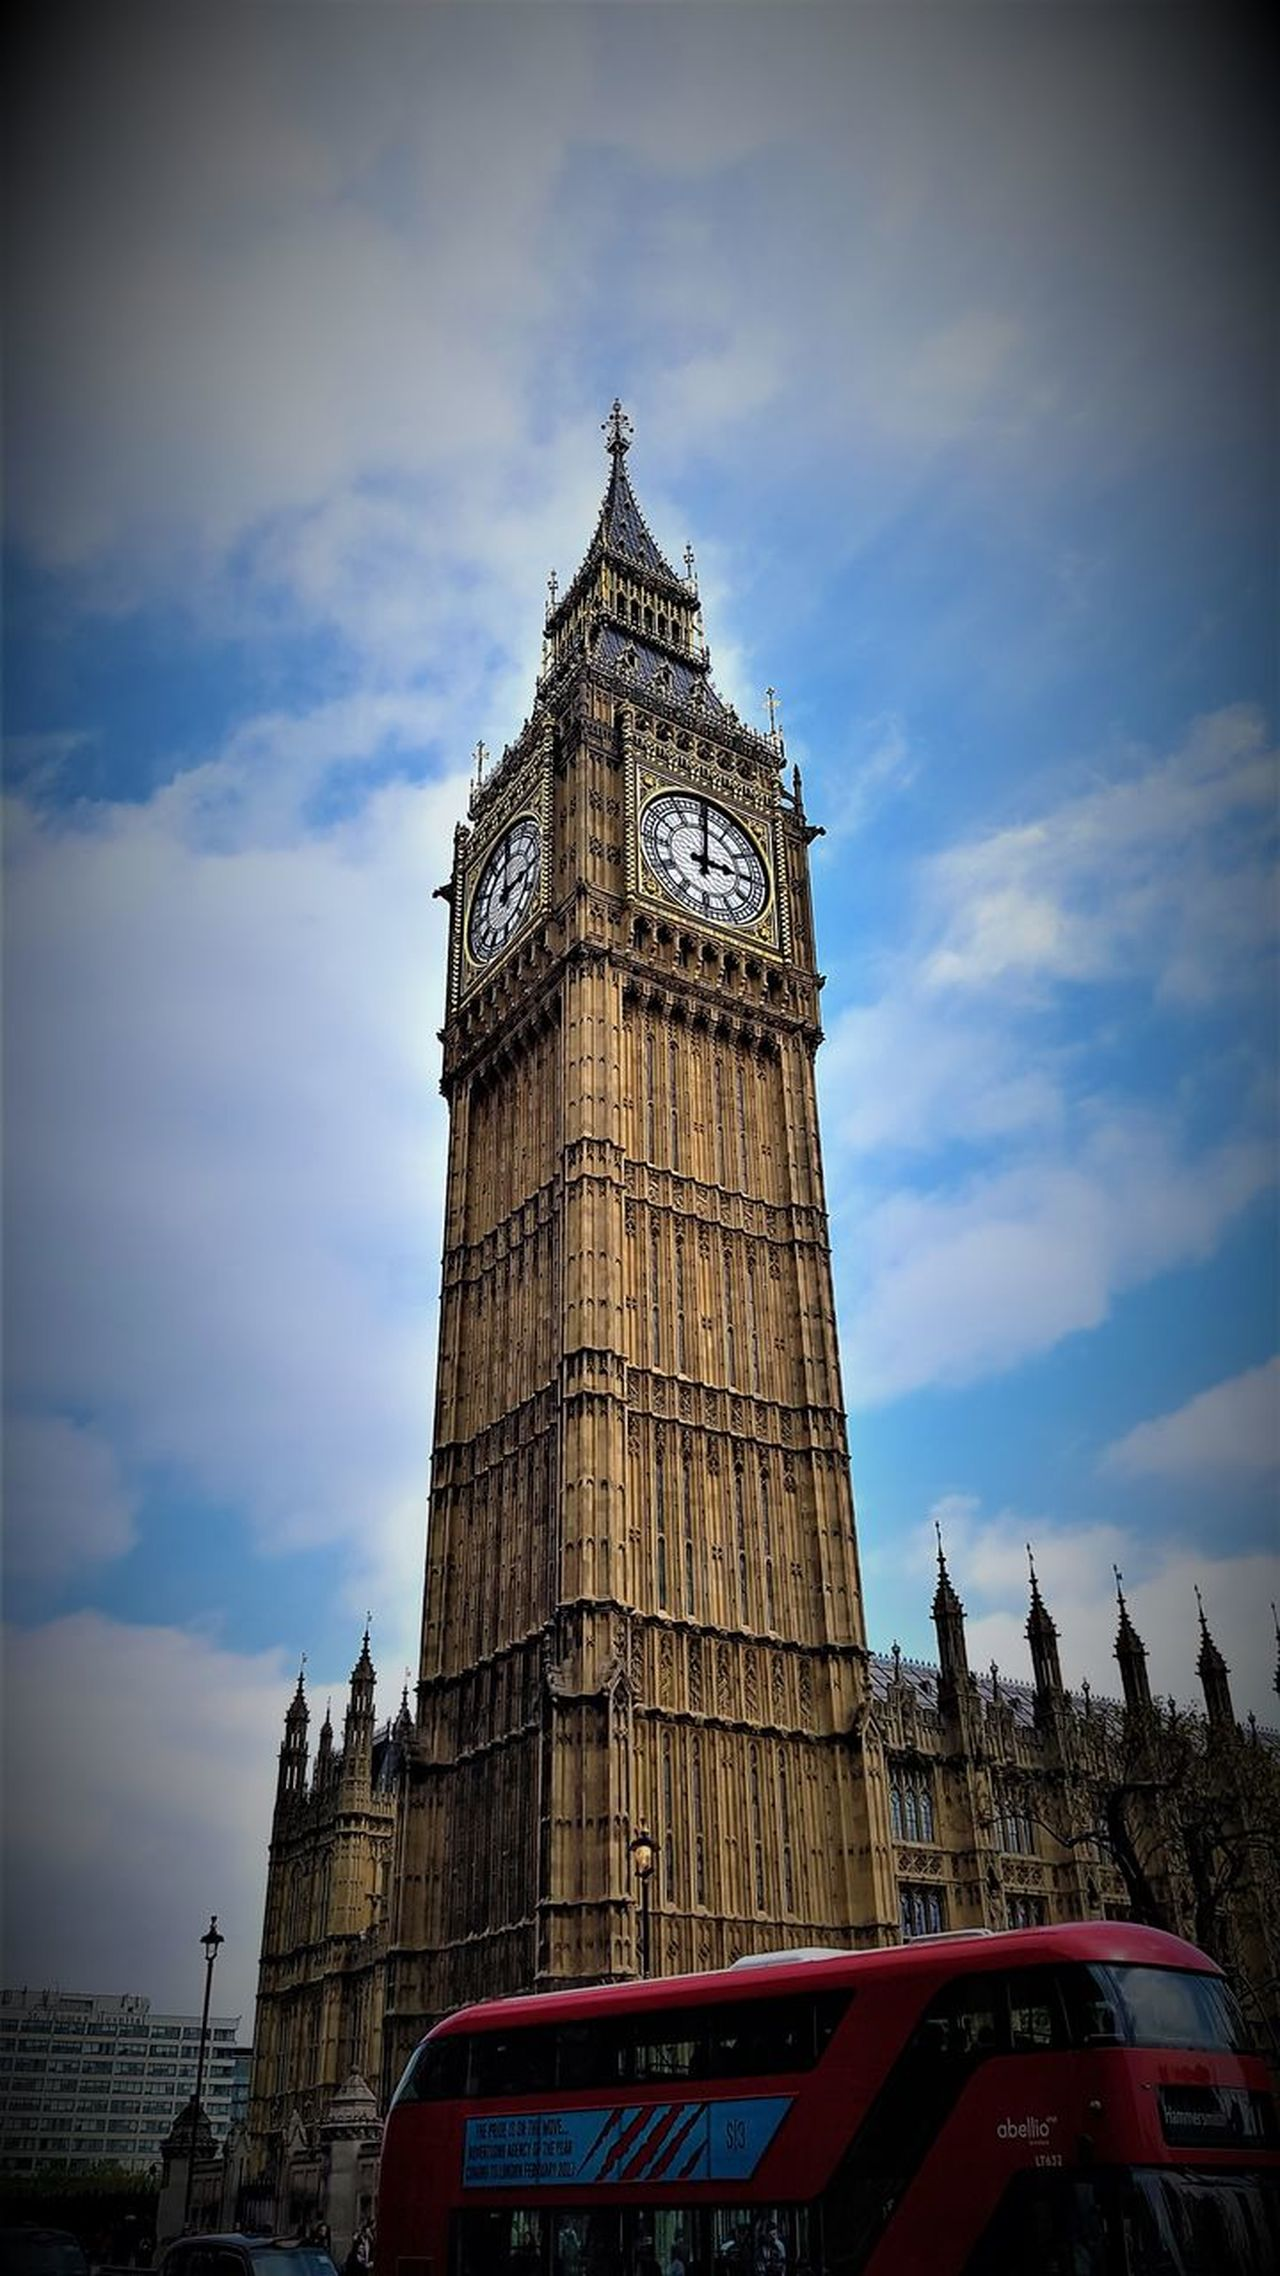 Architecture Big Ben Big Ben London Big Ben, London Blue Sky Built Structure Clock Clock Tower Cloud - Sky Day London London Lifestyle London, UK LONDON❤ Low Angle View Outdoors Red Sky Time Tower Travel Travel And Tourism Travel Destinations Uk Westminster